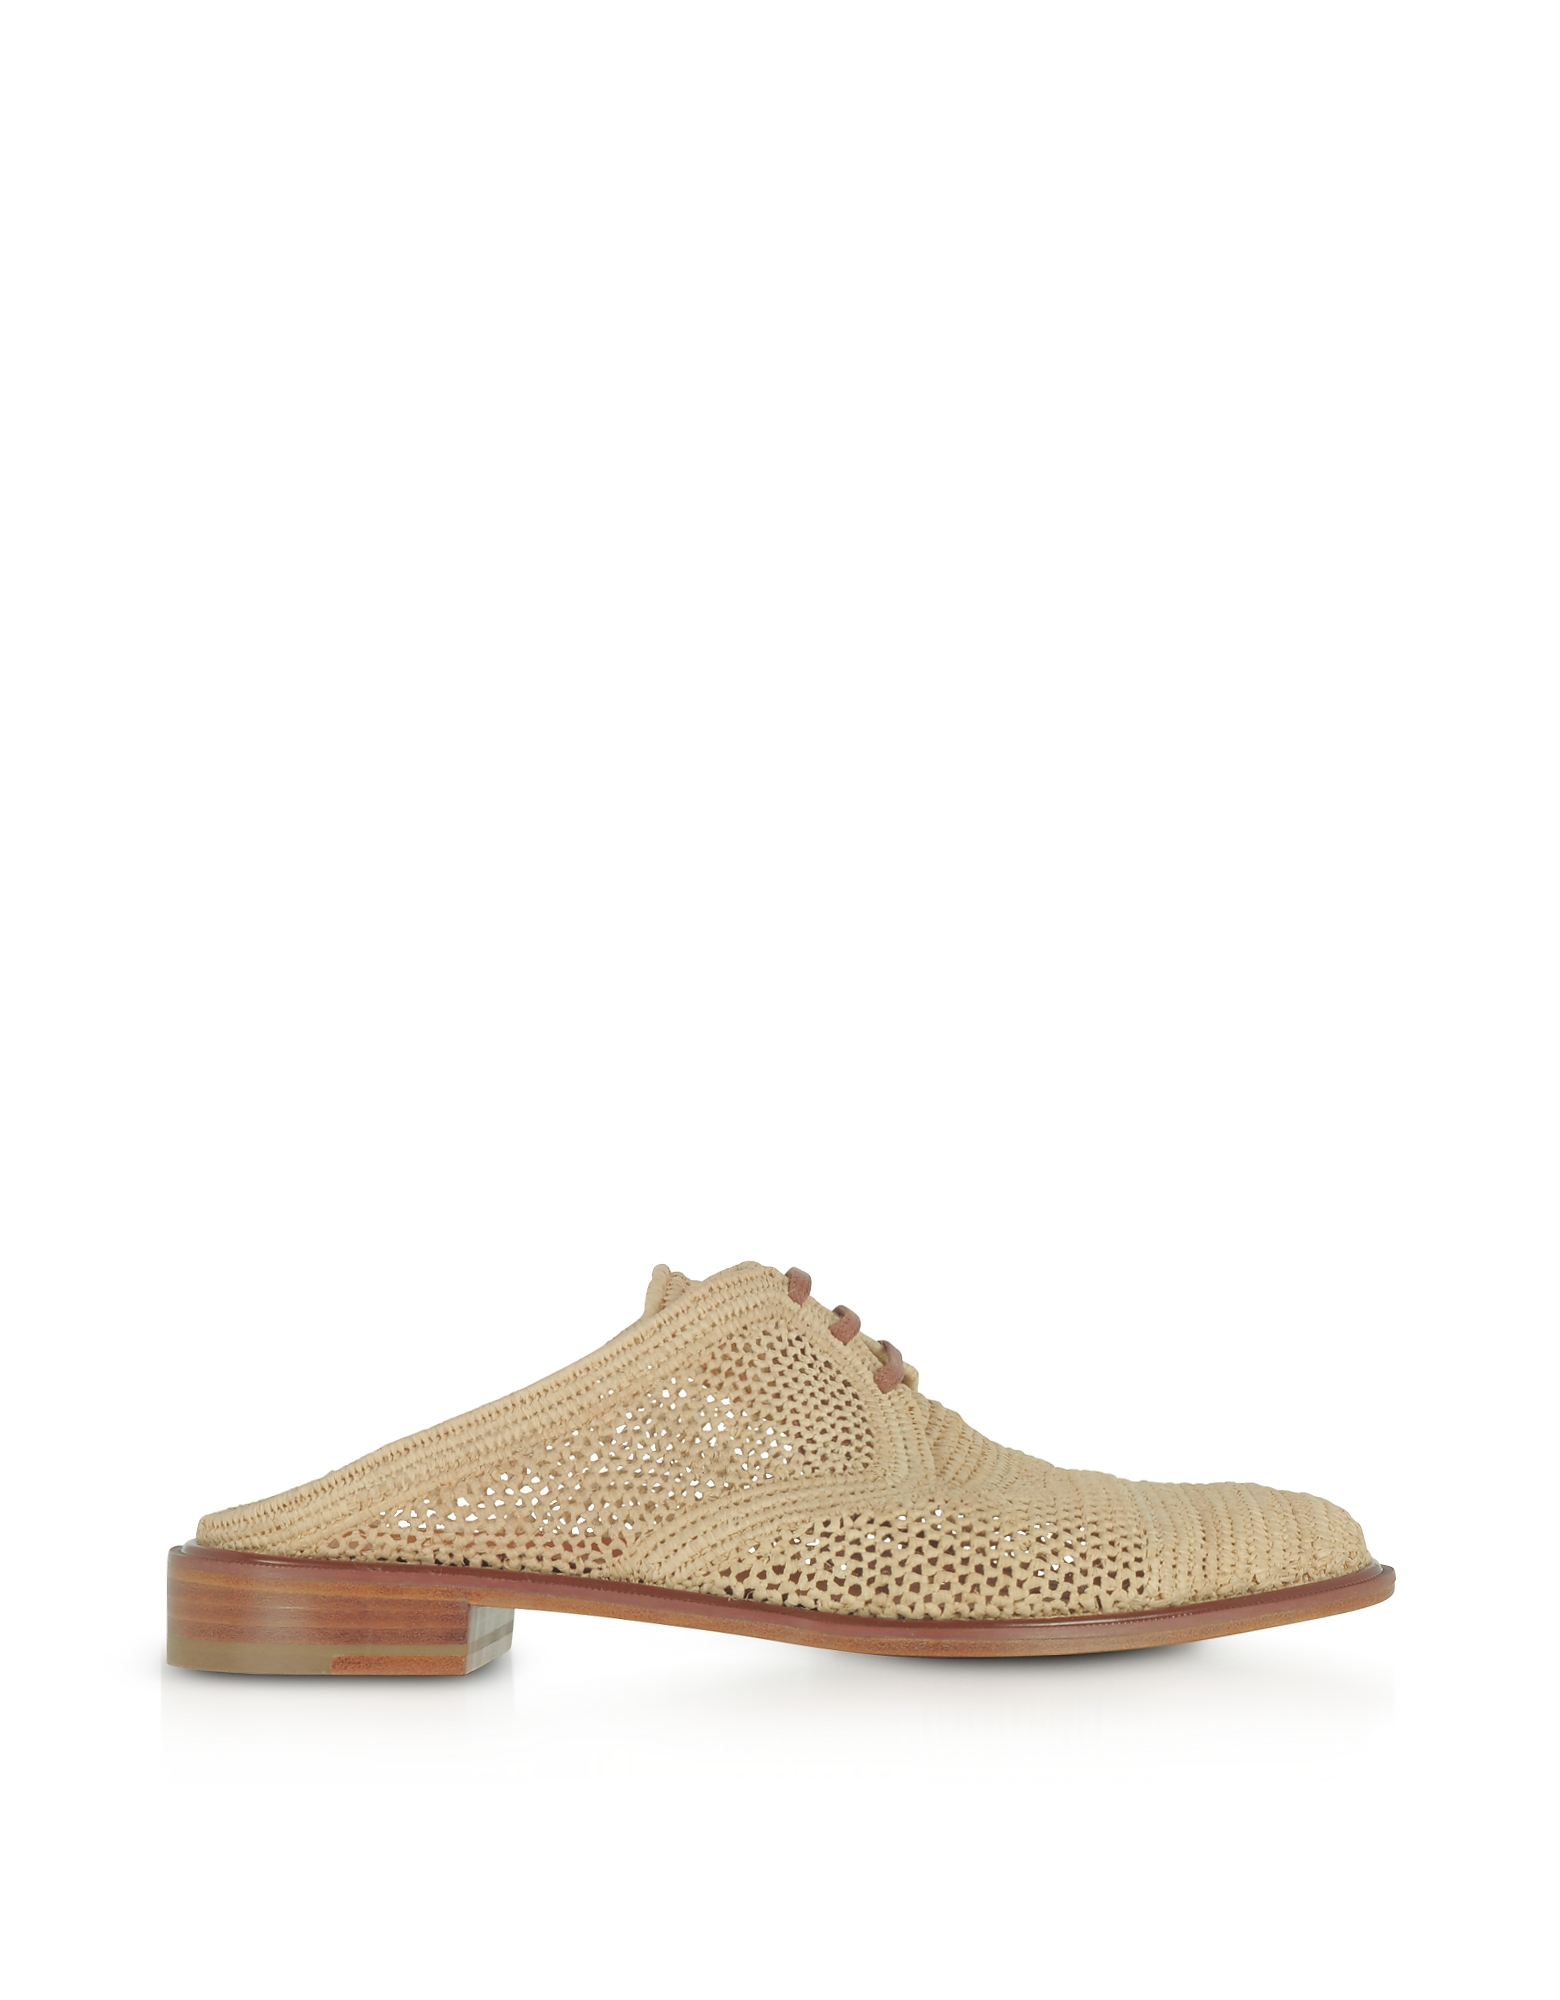 Robert Clergerie Shoes, Jaly Natural Woven Raffia Flat Mules